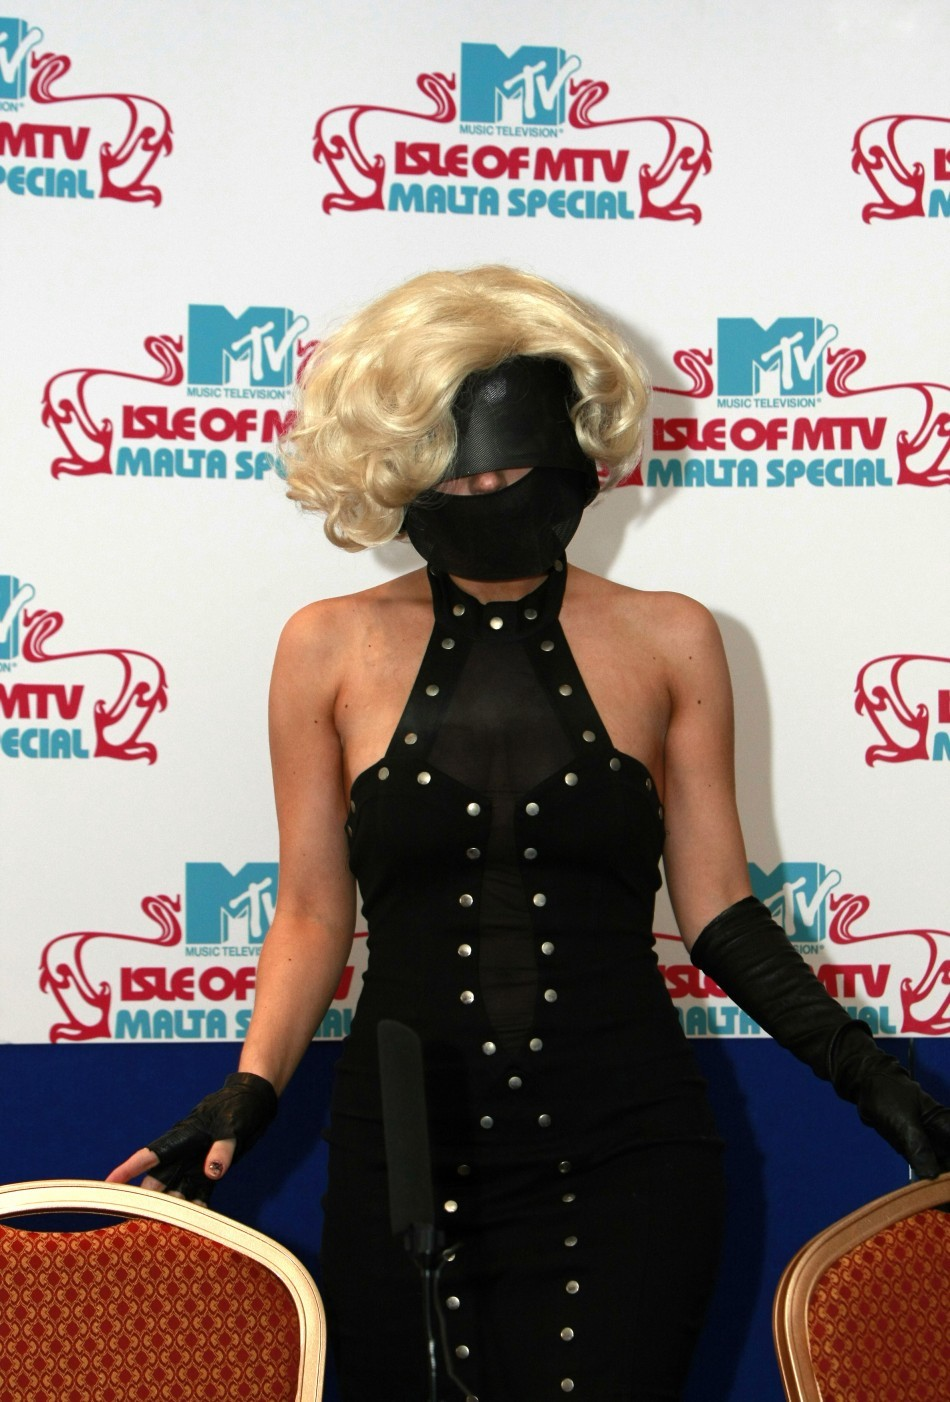 Lady Gaga poses during a news conference before the